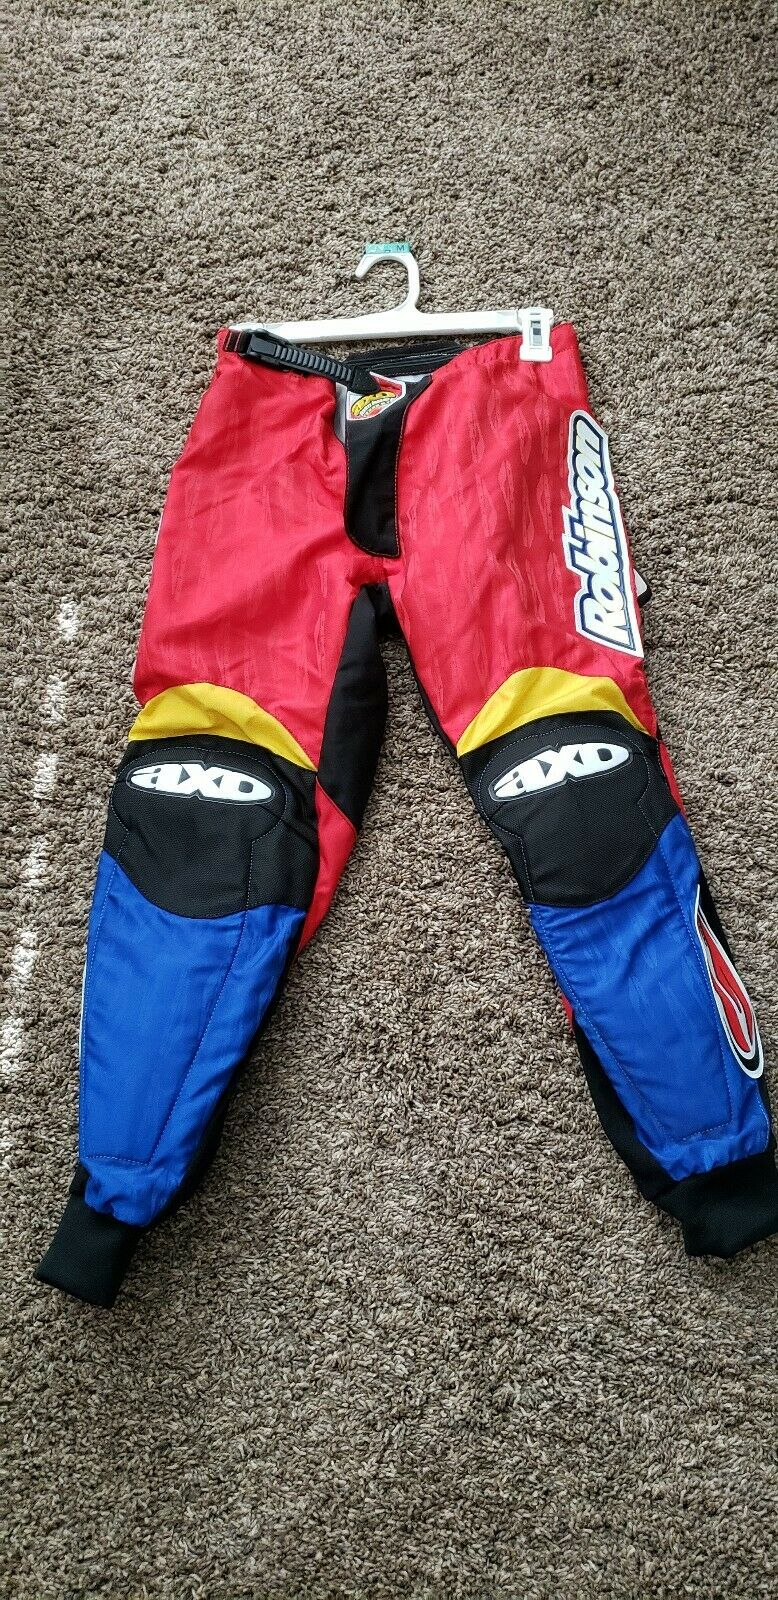 NEW Old School BMX GT Dyno ROBINSON  AXO BMX Racing Pants Leathers size 26  team promotions